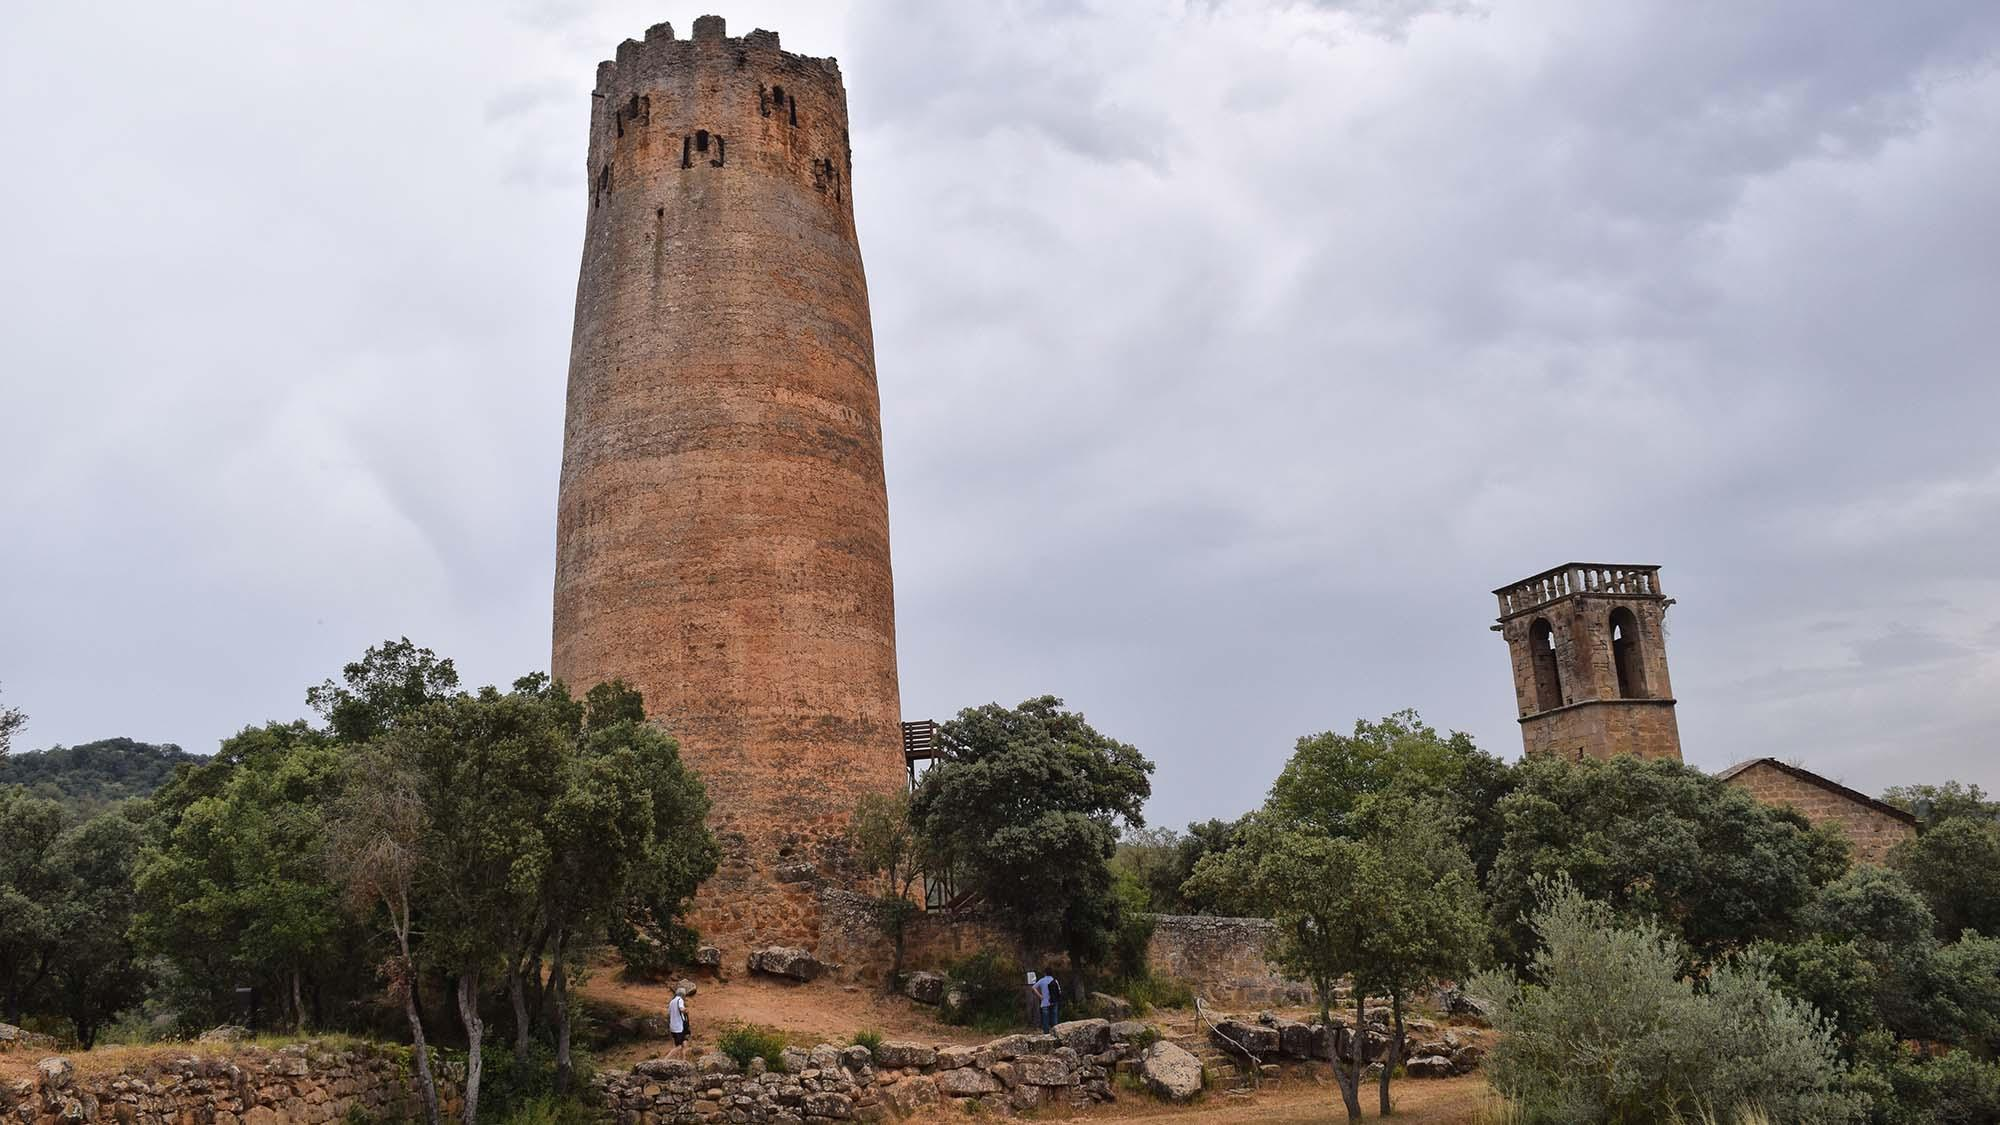 Tower of Vallferosa